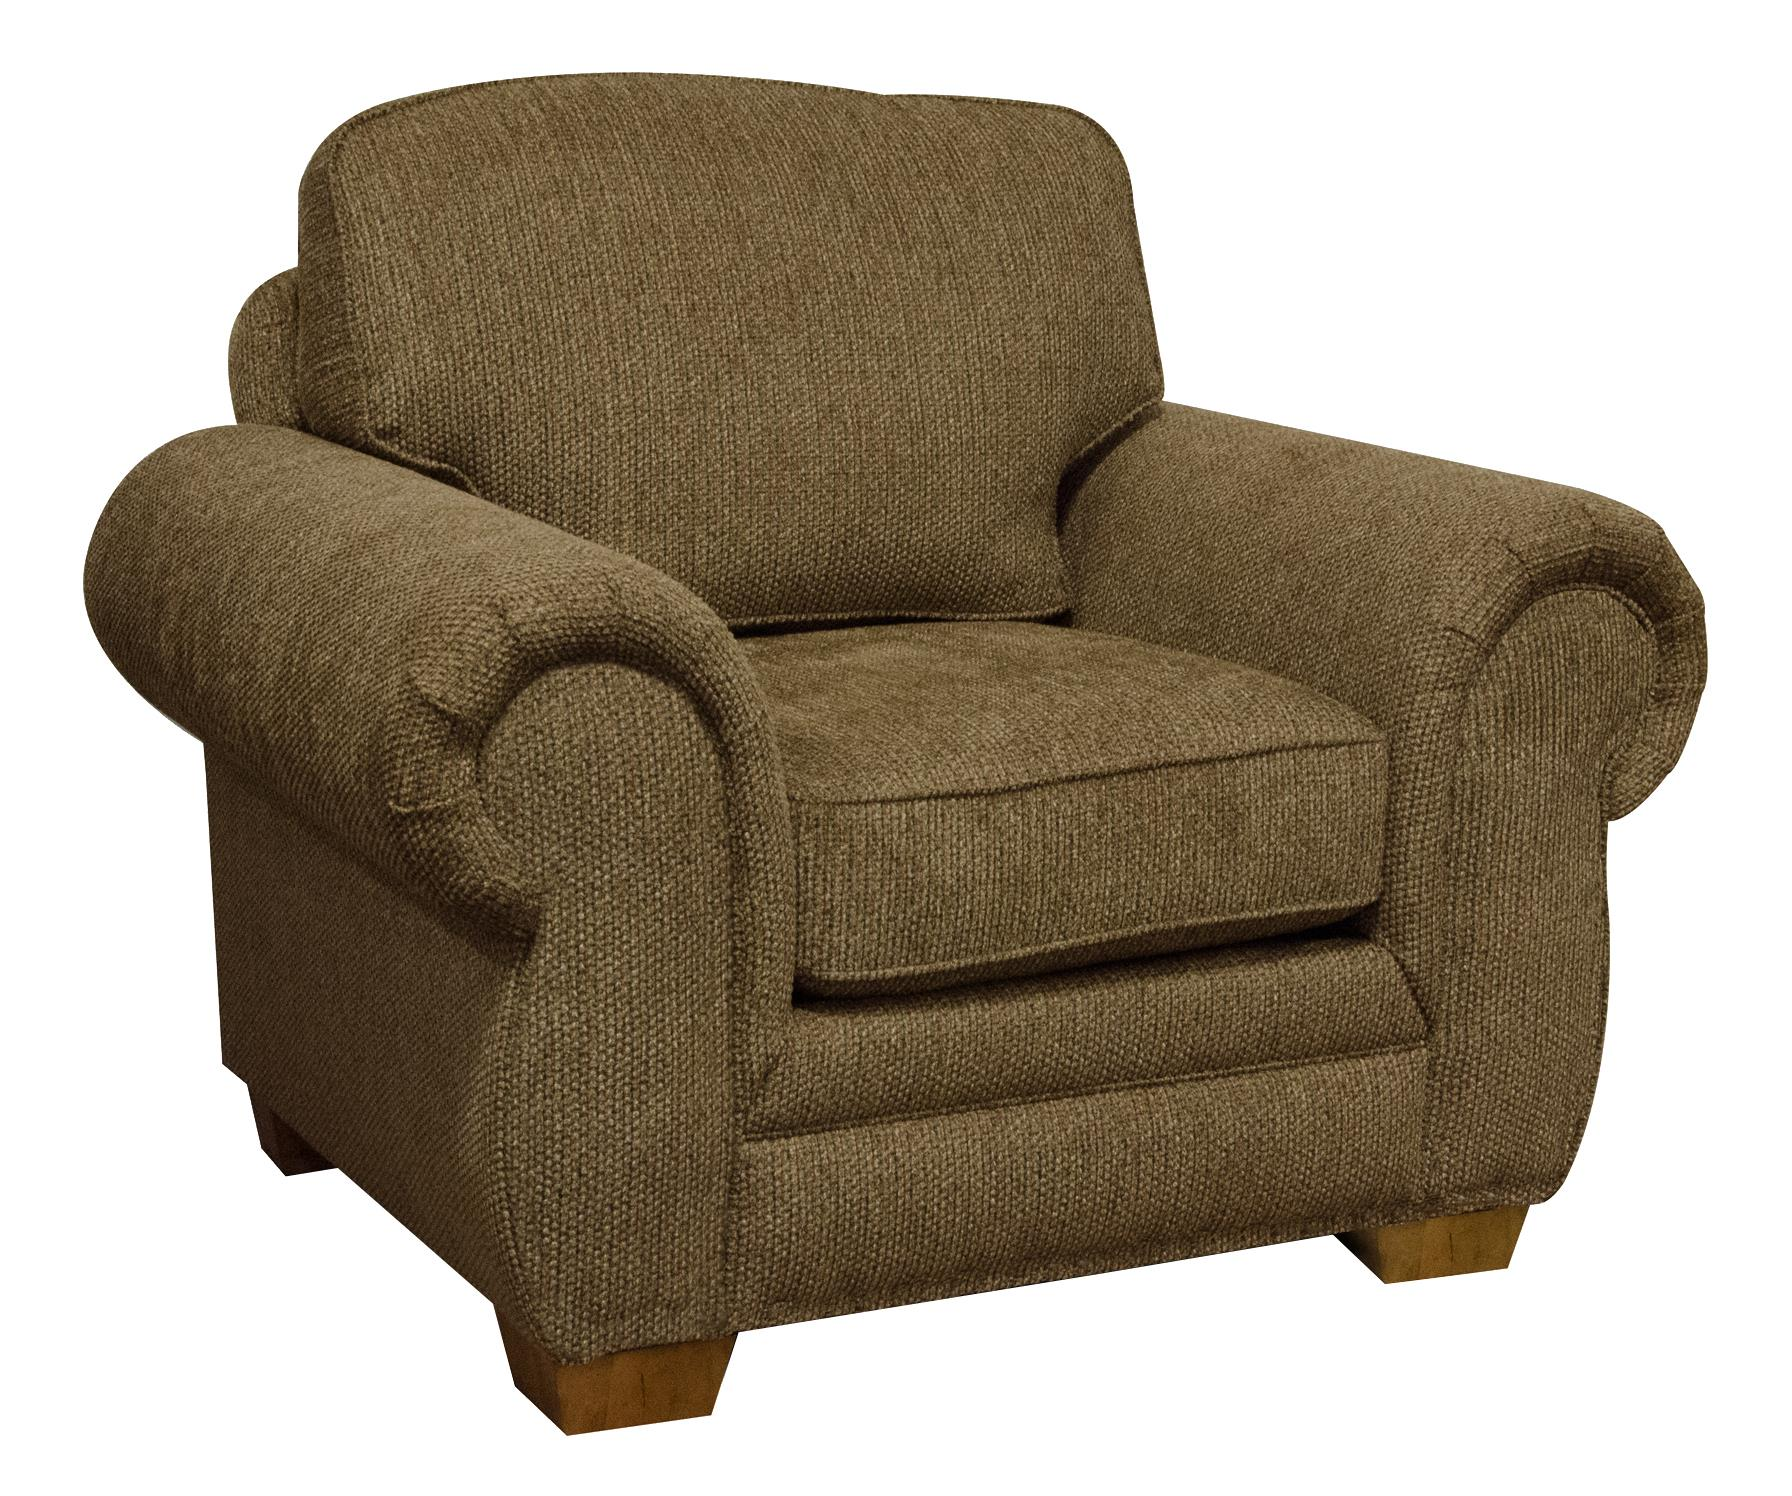 England Walters Chair - Item Number: 6634-6432